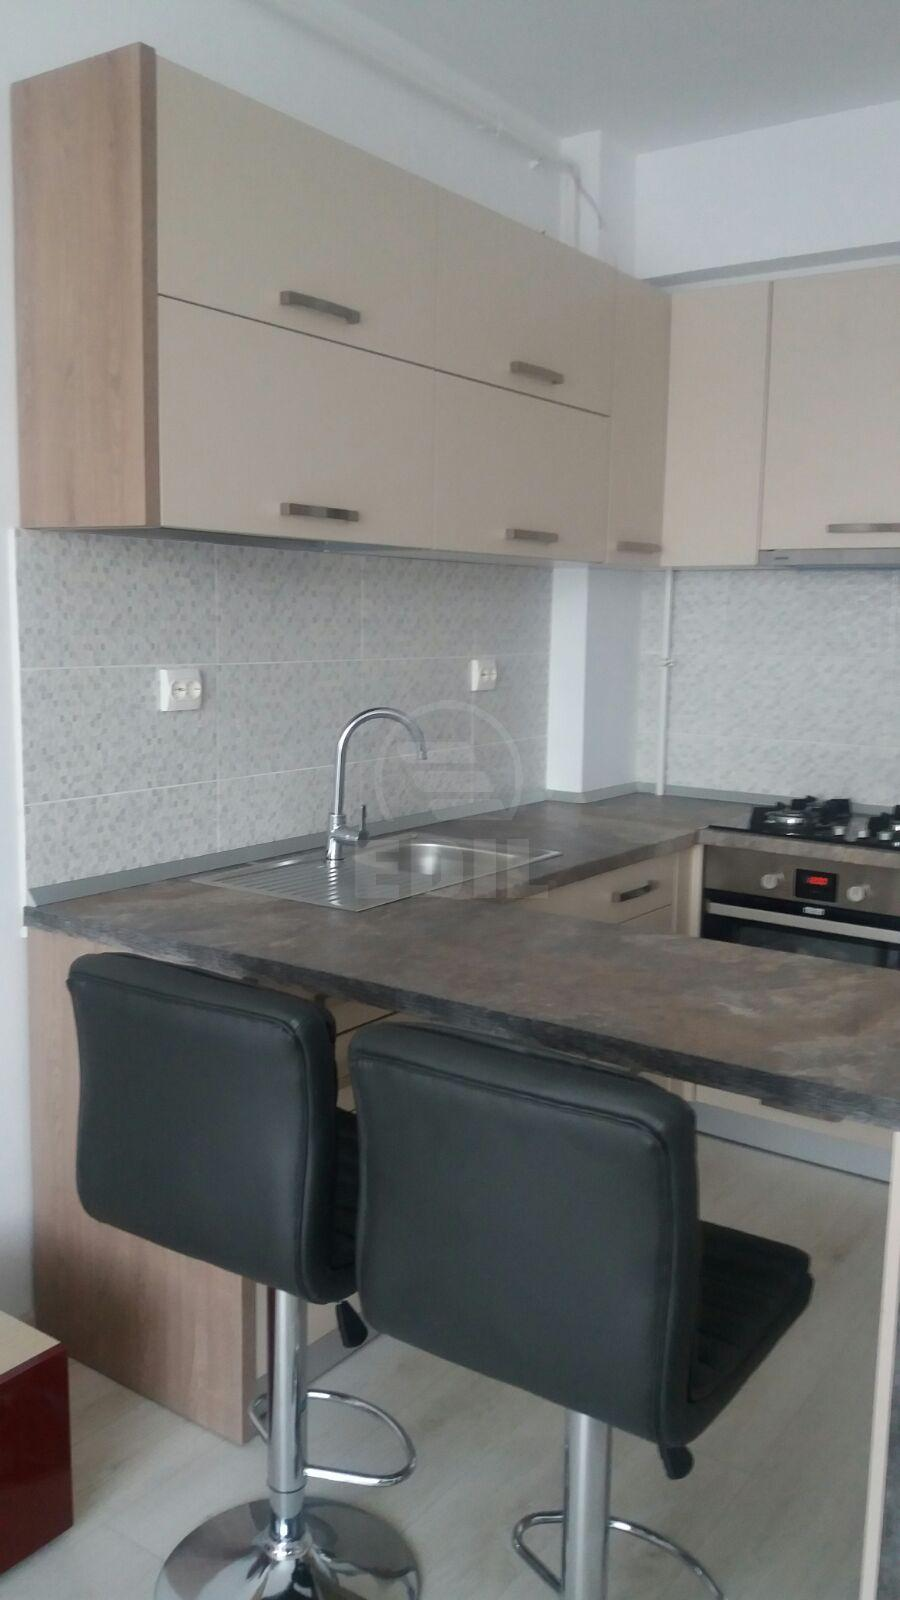 Apartment for rent 2 rooms, APCJ279074-1